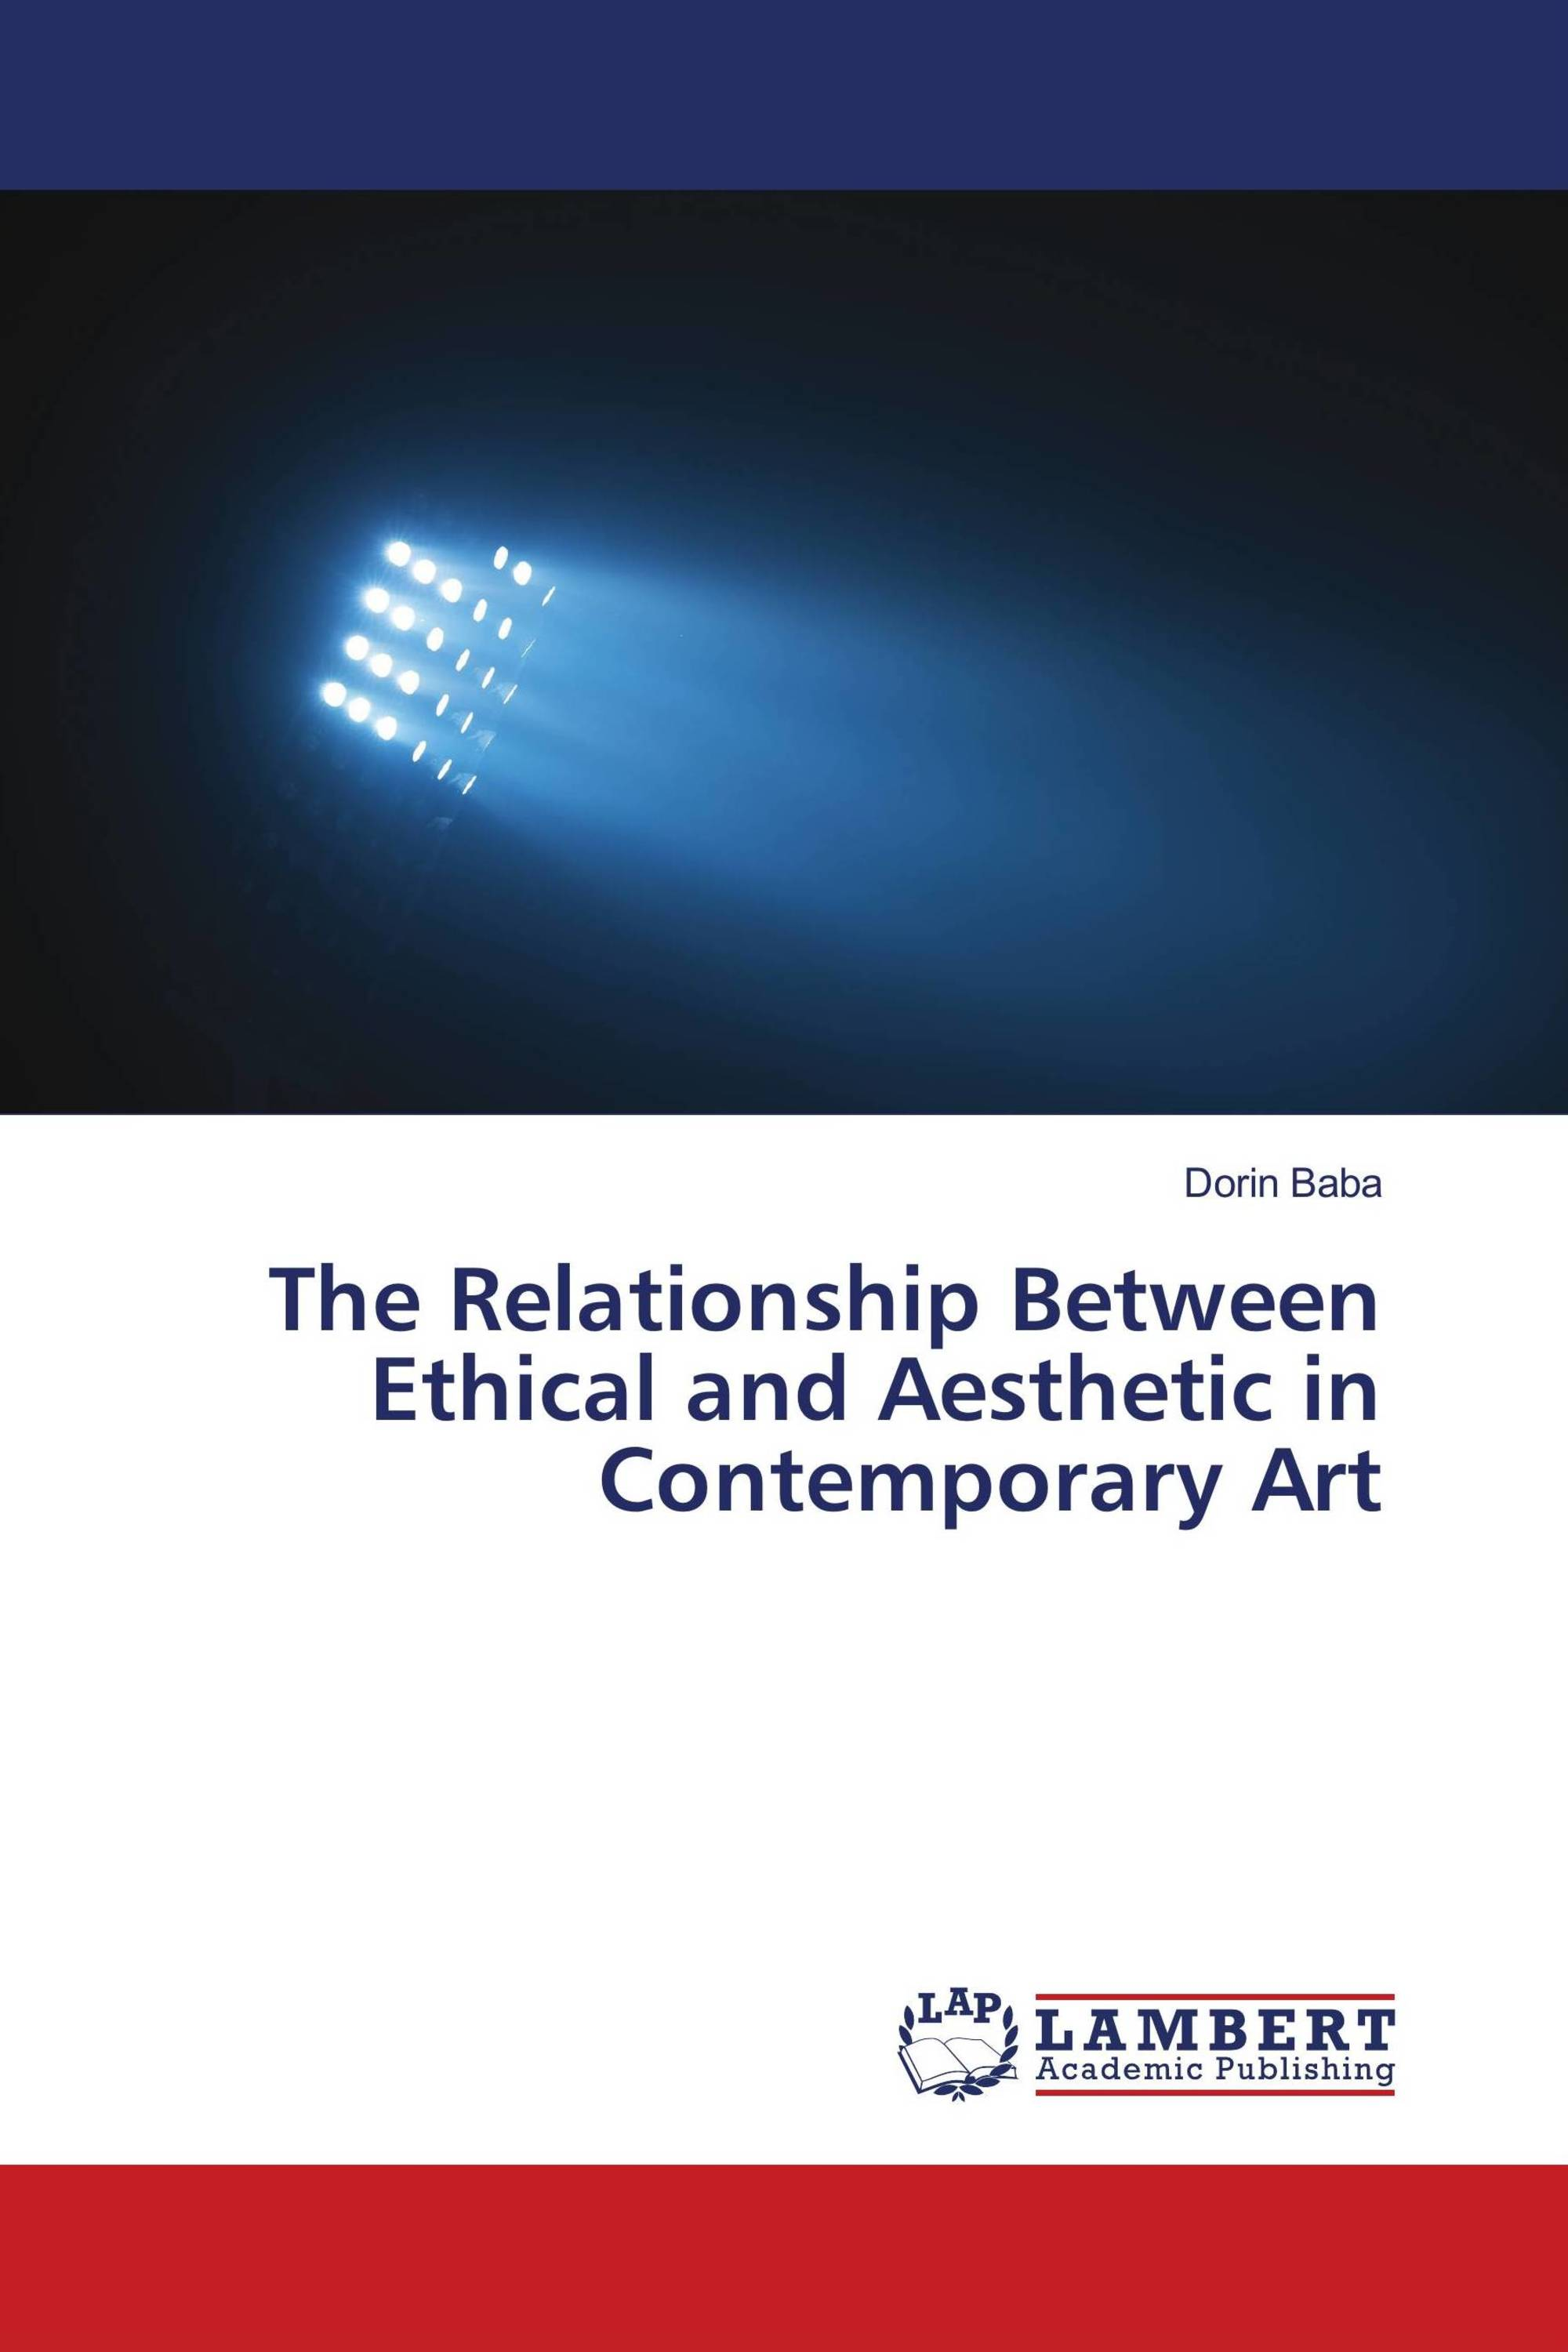 The Relationship Between Ethical and Aesthetic in Contemporary Art